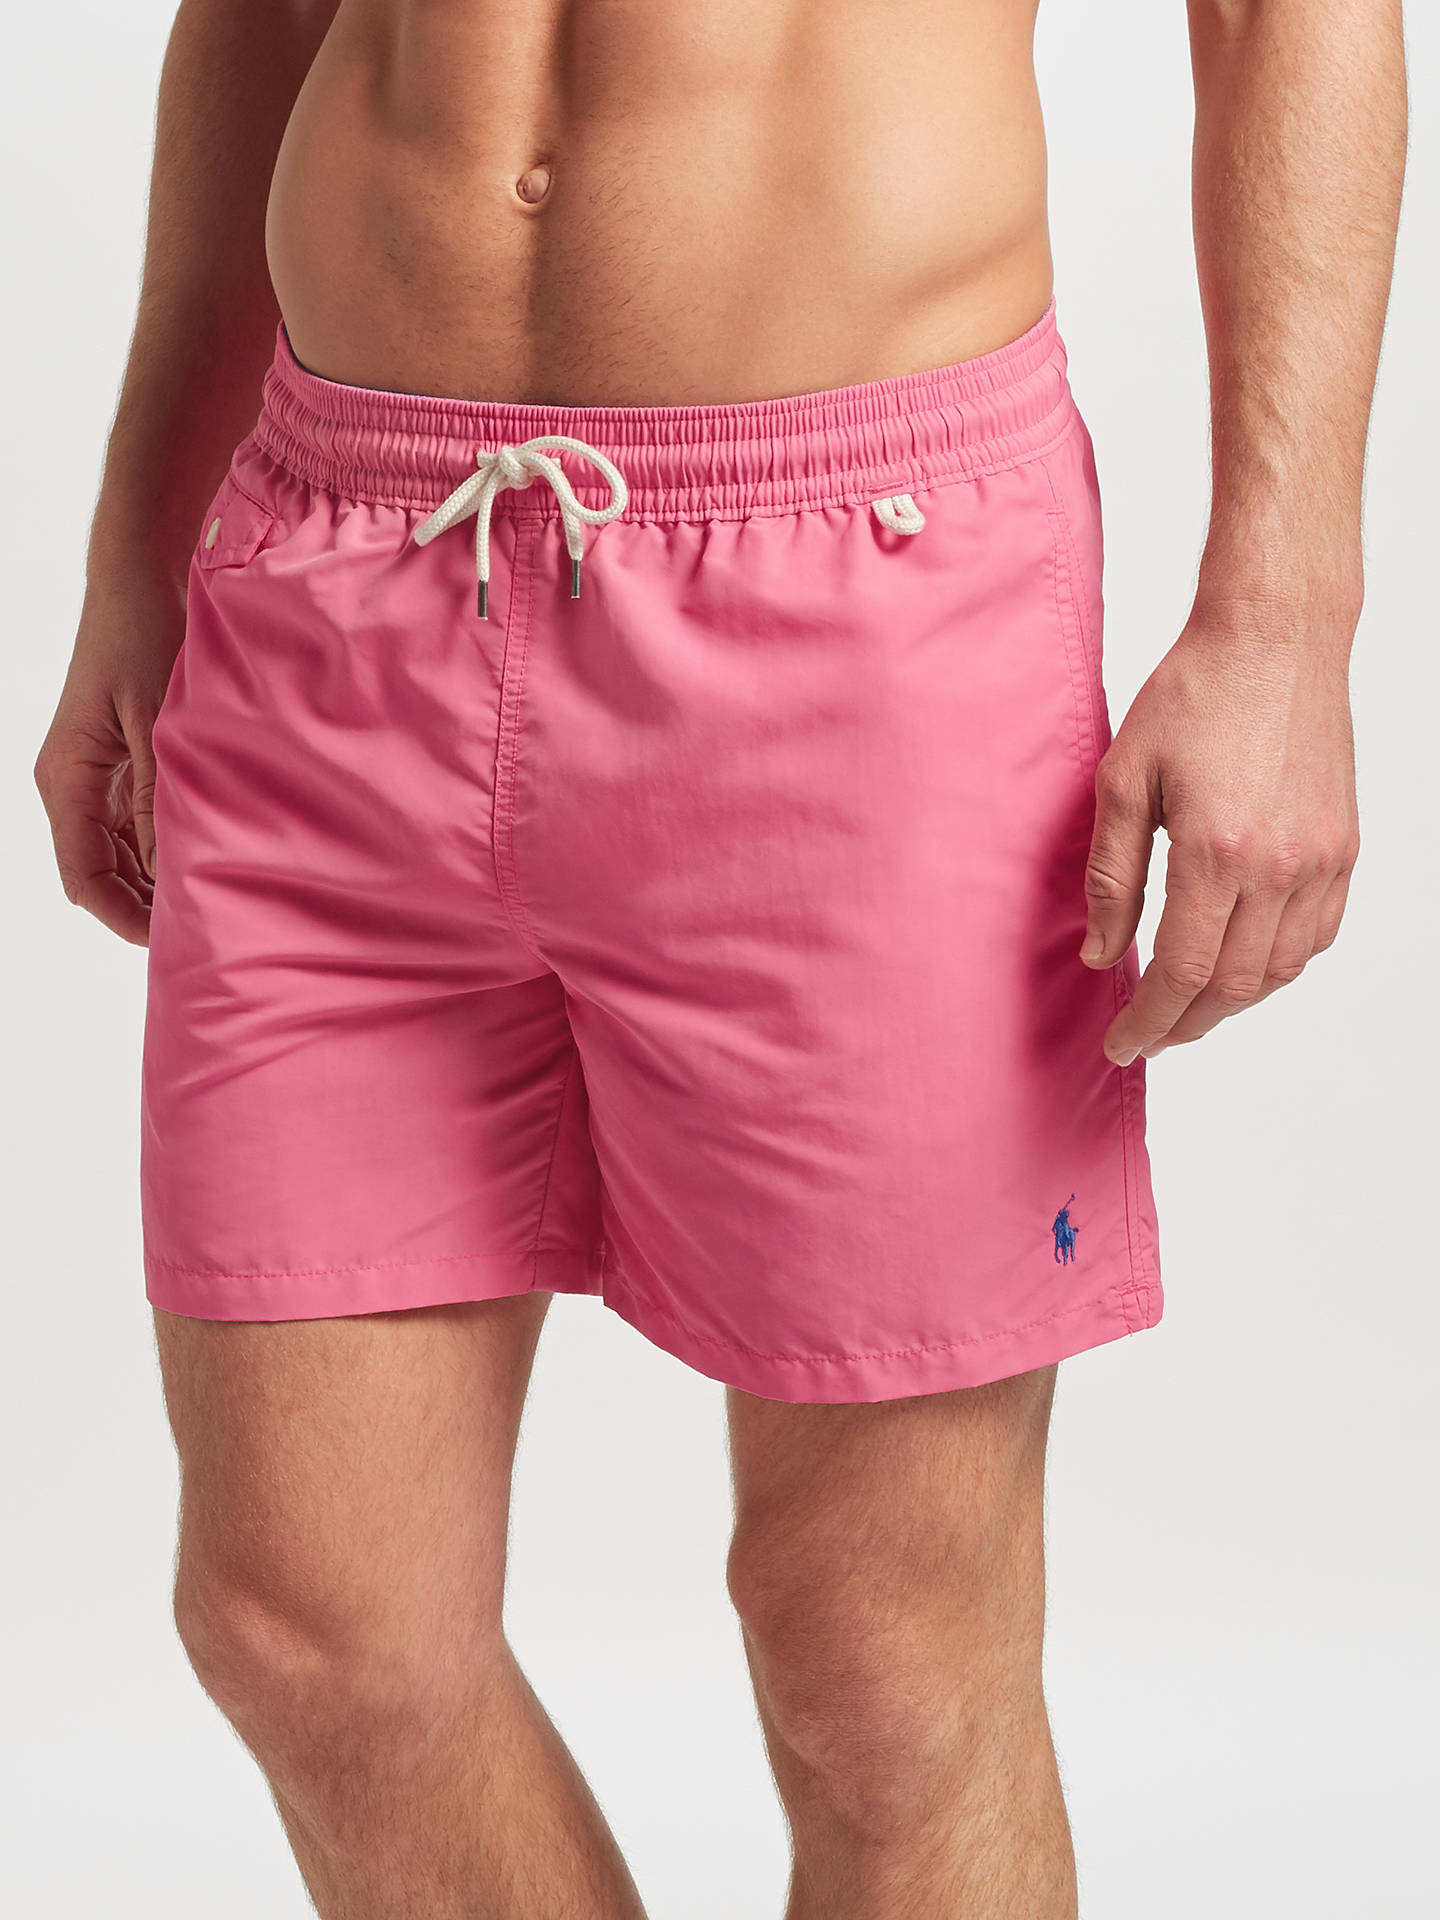 f0bae0a0d1 Buy Polo Ralph Lauren Traveller Swim Shorts, Chroma Pink, S Online at  johnlewis.